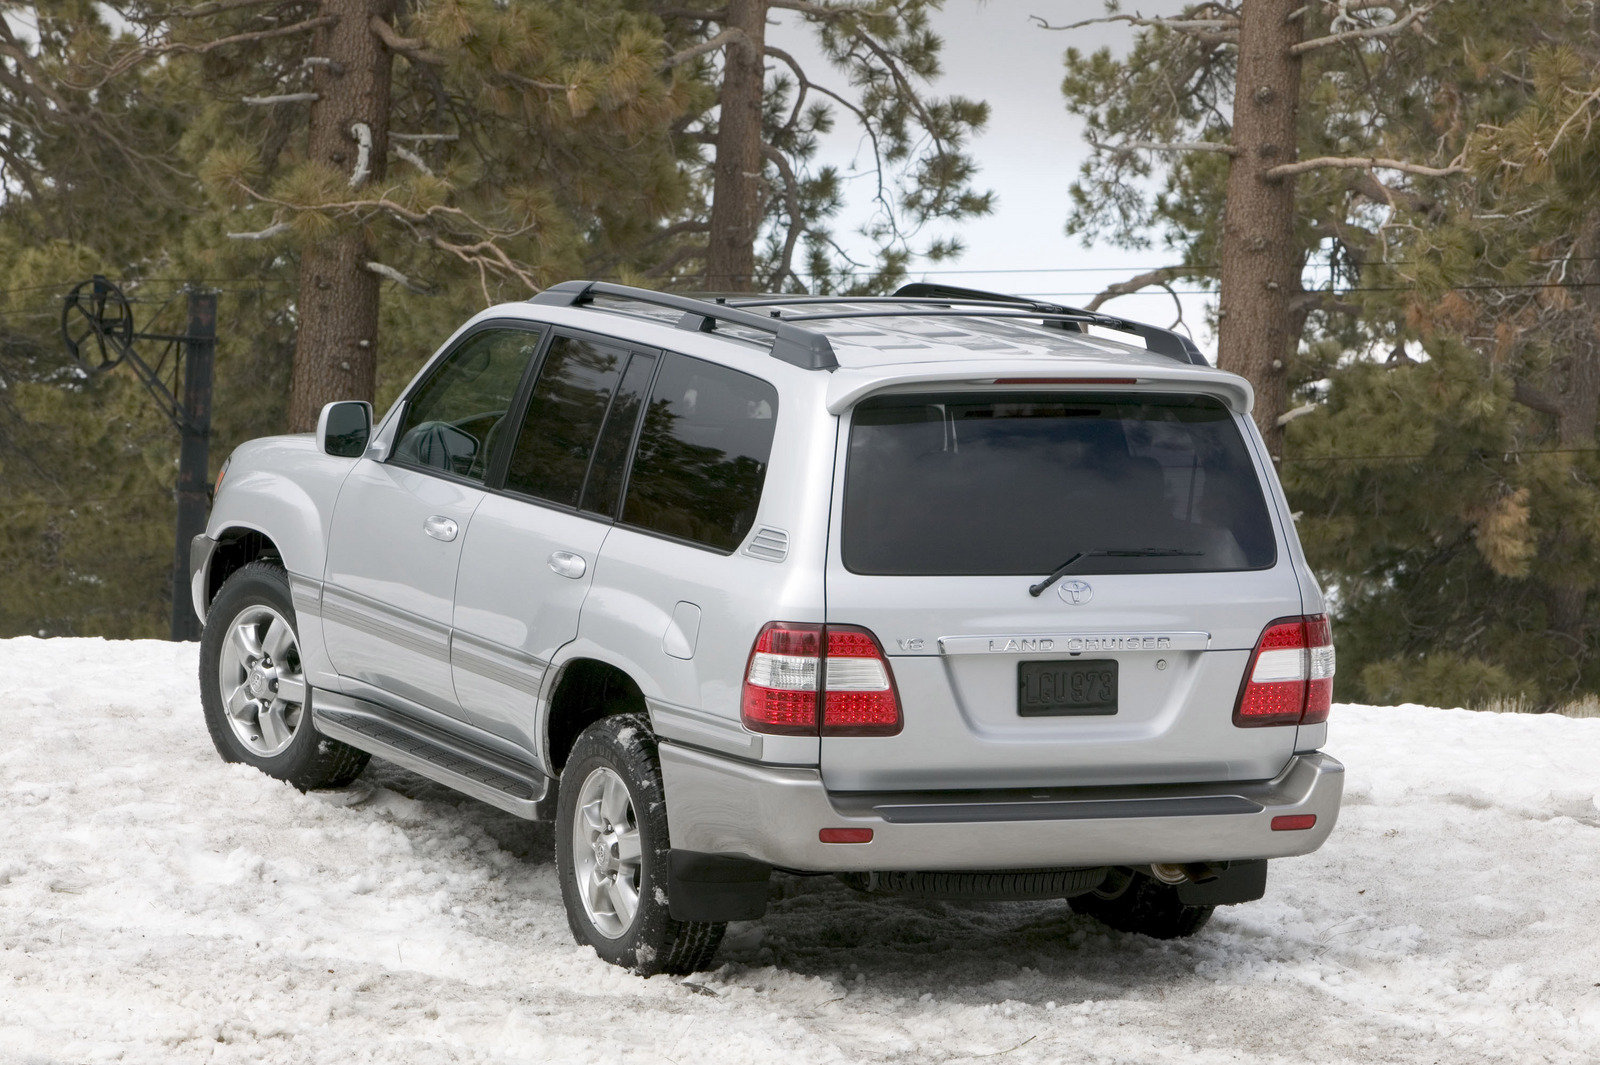 2006 toyota land cruiser picture 94386 car review. Black Bedroom Furniture Sets. Home Design Ideas